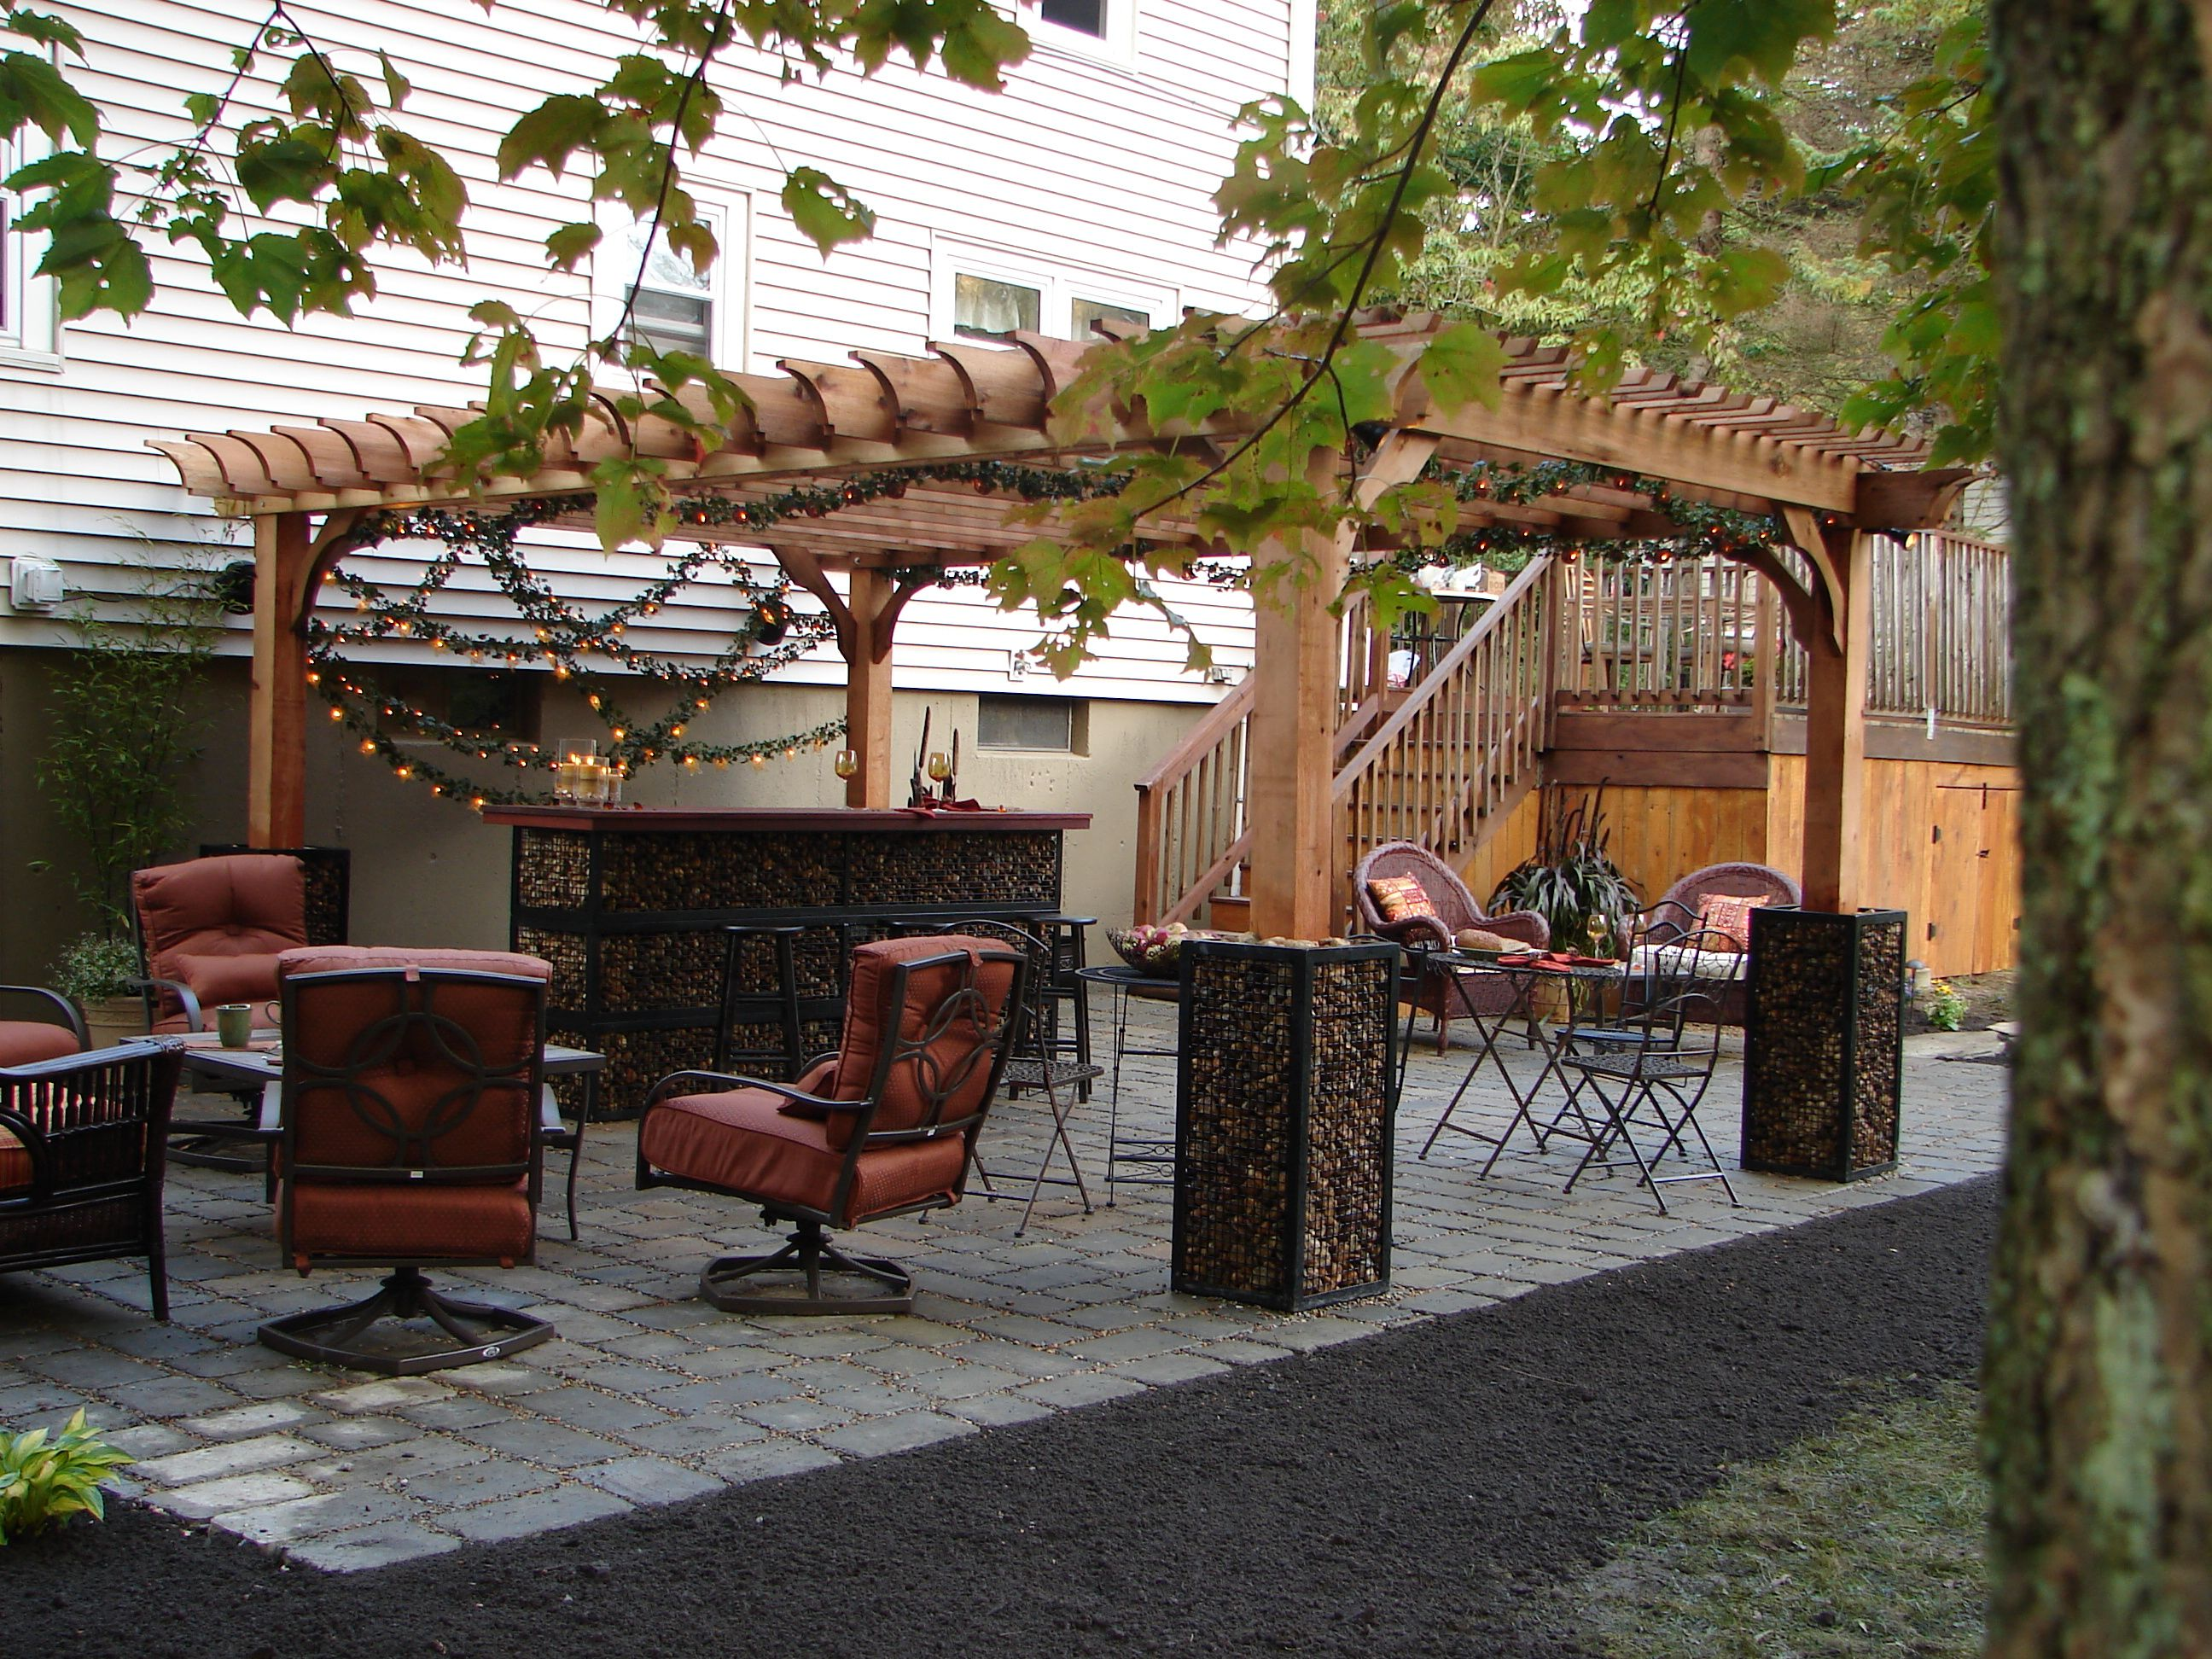 Cost to build pergola - Low Cost Kitset Gabion Basket Suppliers Australia Easy To Build Buy Online And Save Gabions Make Ideal Retaining Walls And Fences Aus